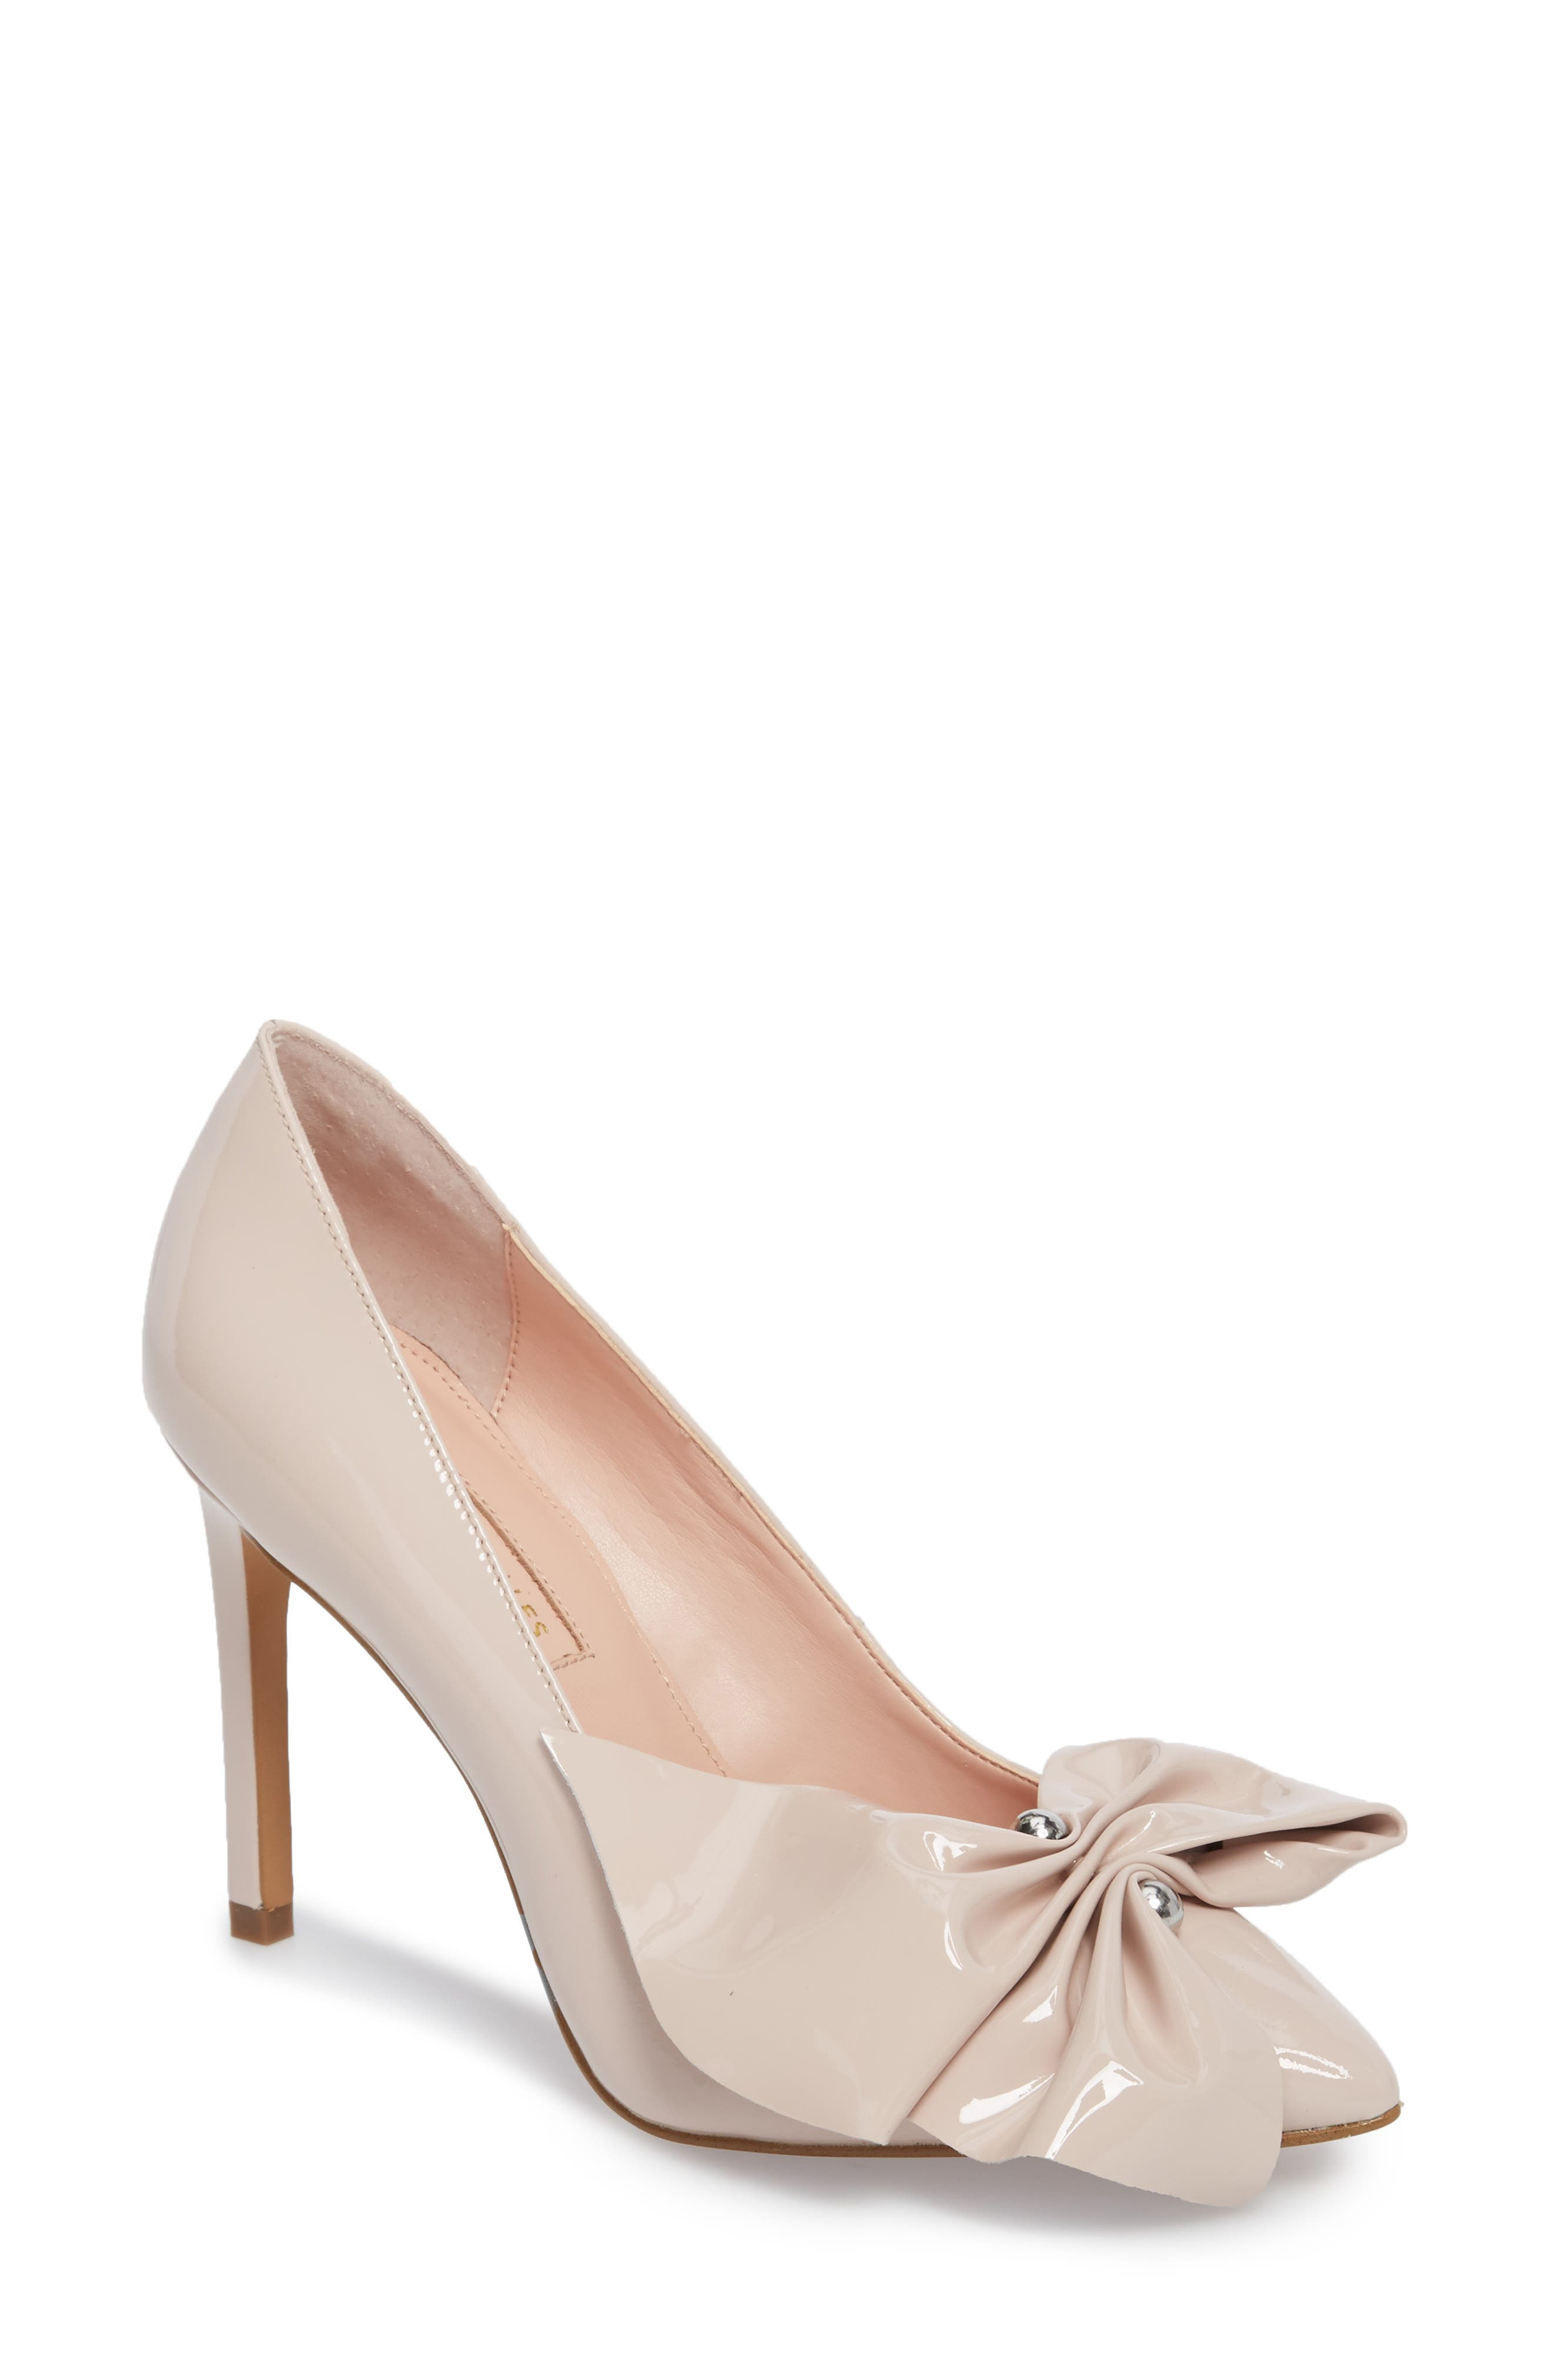 Bow Pointy Toe Pump,                             Main thumbnail 1, color,                             Avec Pink Leather